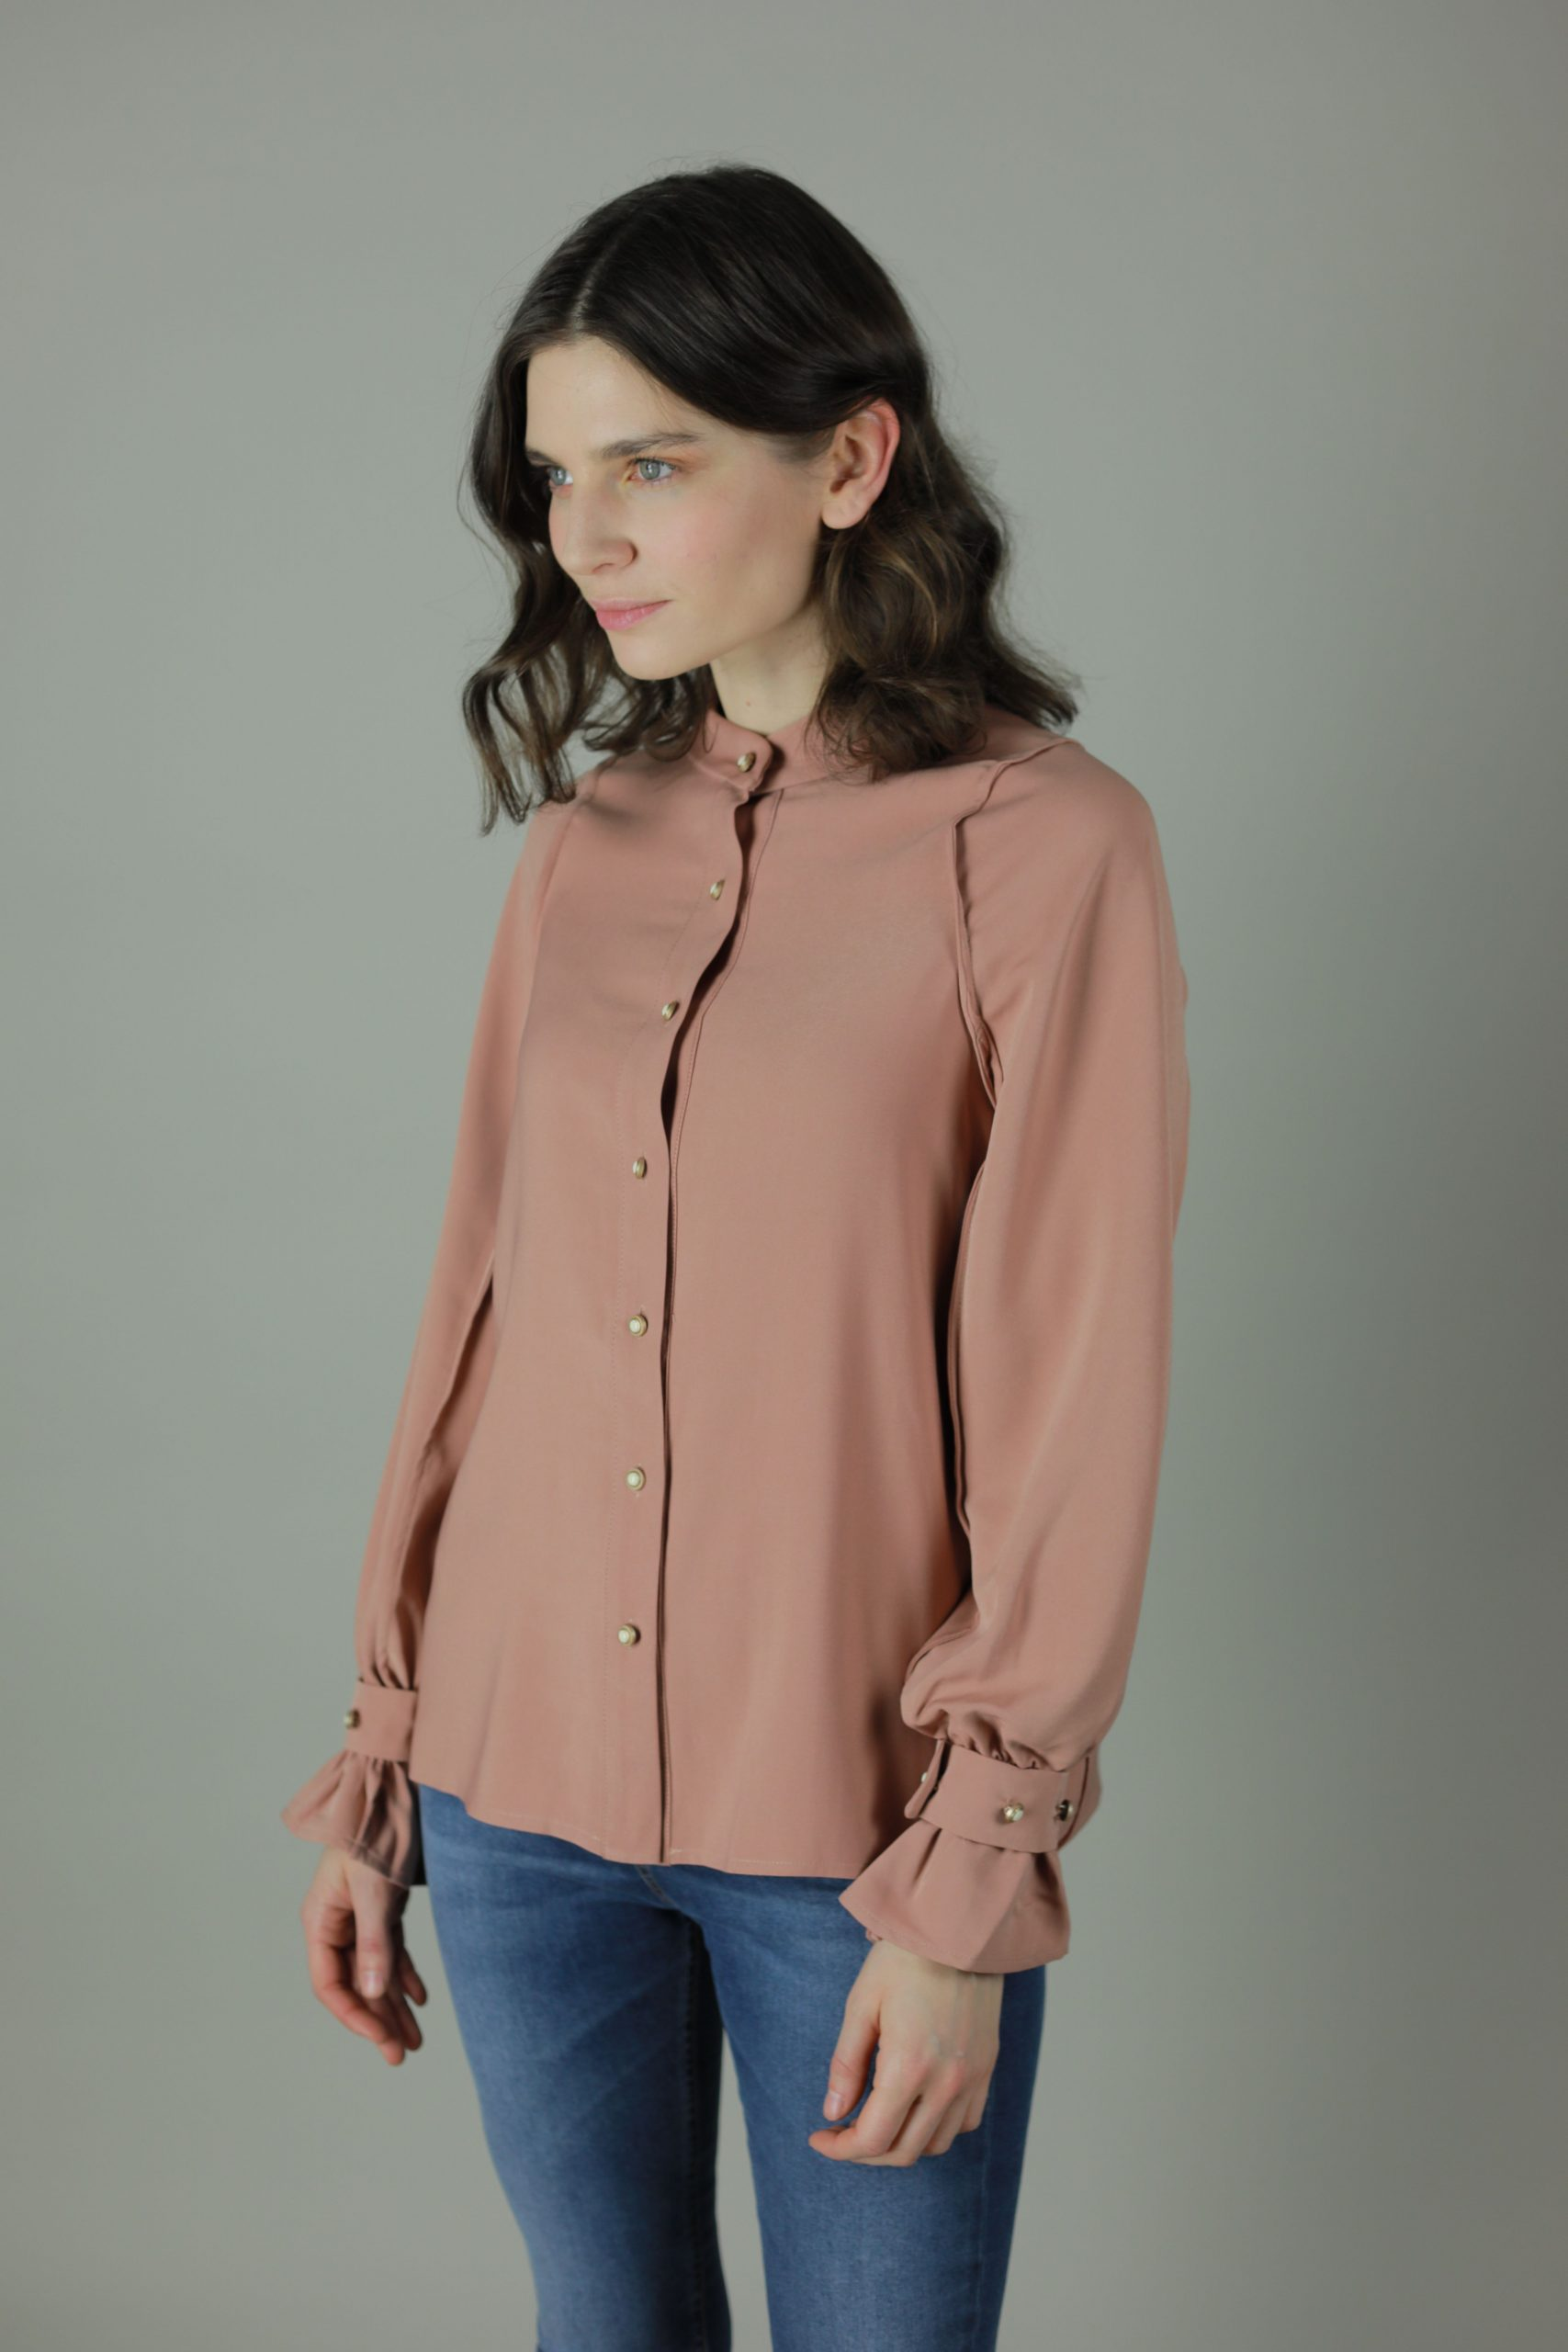 The Peach Pearl blouse is made to compliment any outfit, work, casual or formal wear. Timelessly luxurious the Peach Pearl Blouse features beautiful soft feel against your skin, hanging for flattering fit and pearl style buttons for an exquisite finish.